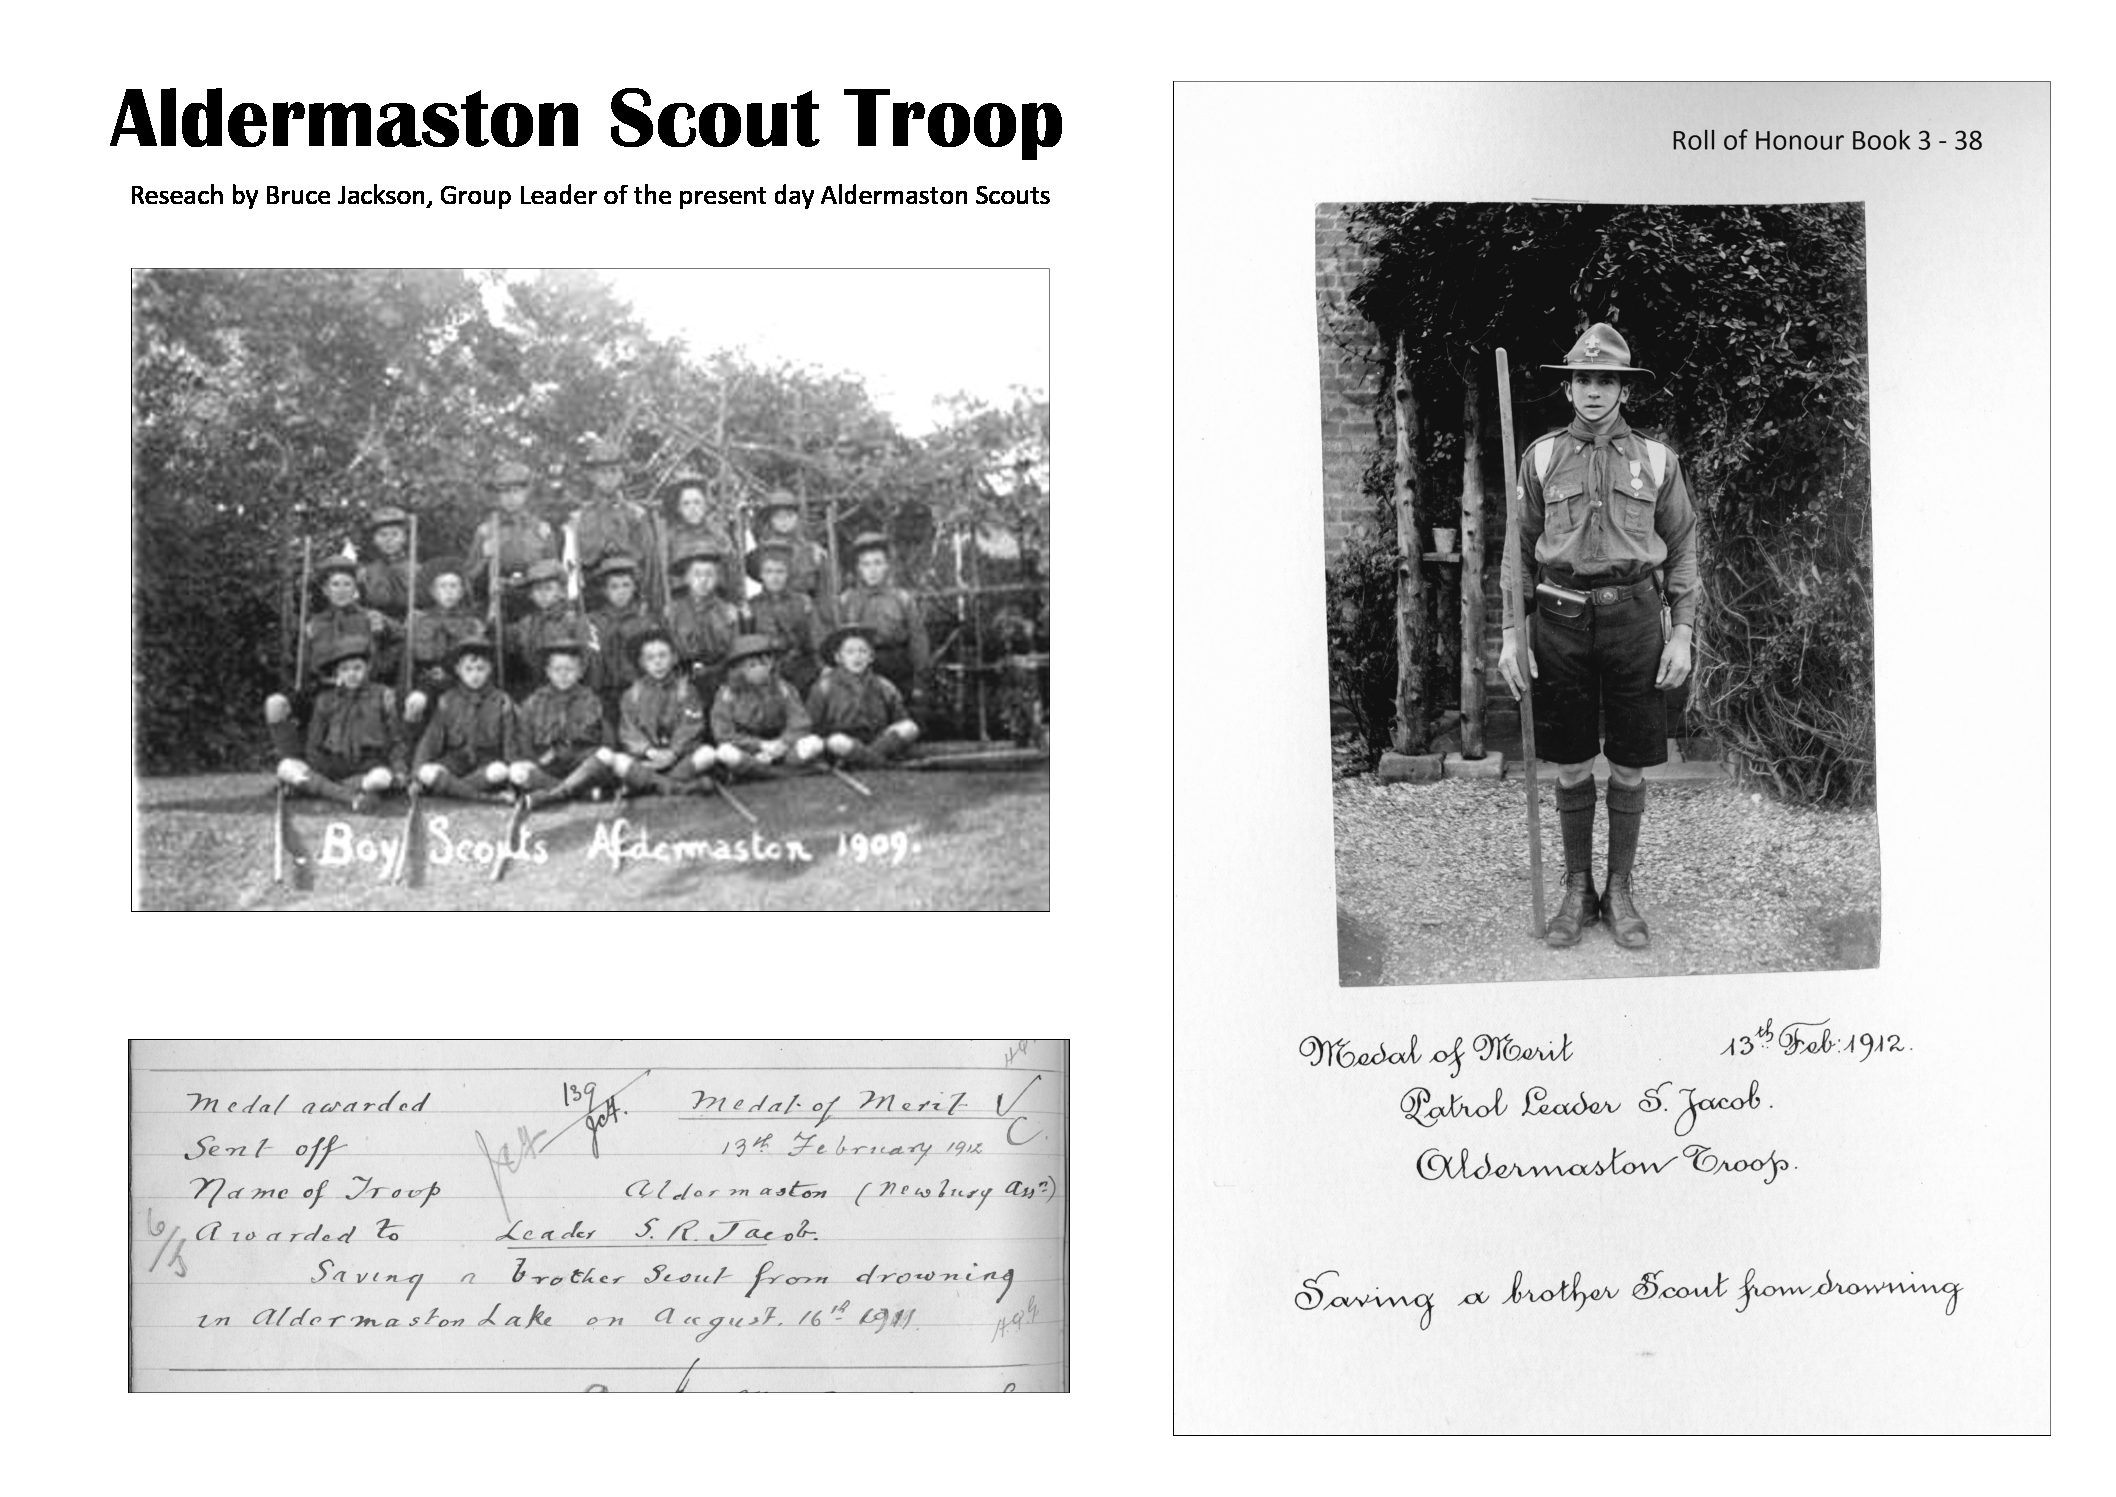 Exhibit: Aldermaston Scout Troop